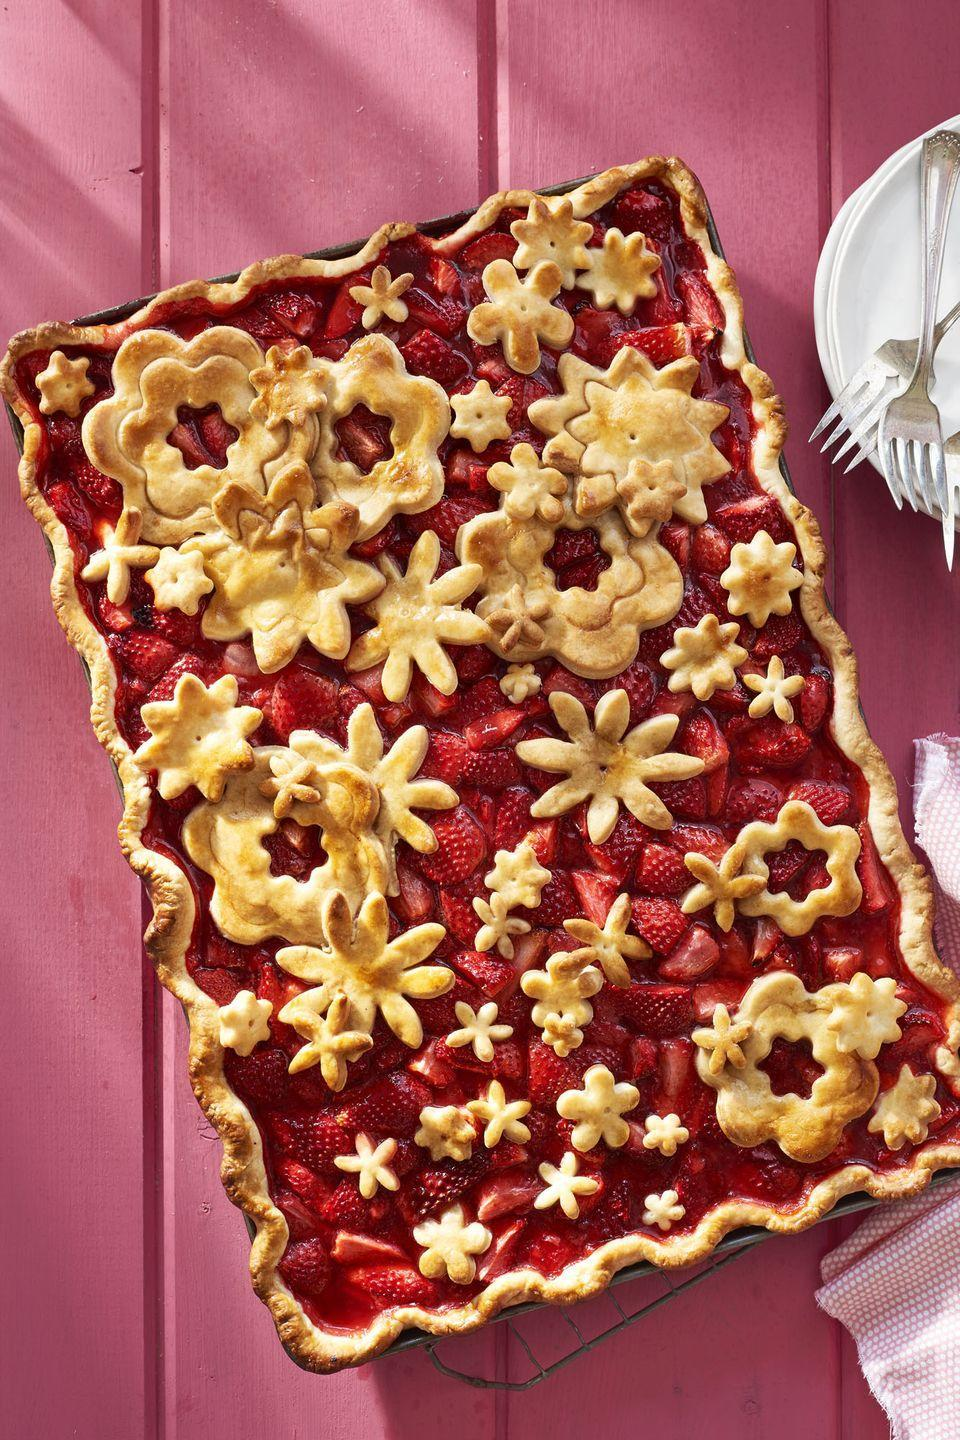 """<p>It's strawberry season, folks! Celebrate with this fruity pie.</p><p><em><a href=""""https://www.countryliving.com/food-drinks/recipes/a41978/strawberry-slab-pie-recipe/"""" rel=""""nofollow noopener"""" target=""""_blank"""" data-ylk=""""slk:Get the recipe from Country Living »"""" class=""""link rapid-noclick-resp"""">Get the recipe from Country Living »</a></em></p><p><strong>RELATED:</strong><a href=""""https://www.goodhousekeeping.com/food-recipes/g1137/fresh-strawberry-recipes/"""" rel=""""nofollow noopener"""" target=""""_blank"""" data-ylk=""""slk:20 Delicious Strawberry Recipes to Make This Spring and Summer"""" class=""""link rapid-noclick-resp""""> 20 Delicious Strawberry Recipes to Make This Spring and Summer</a></p>"""